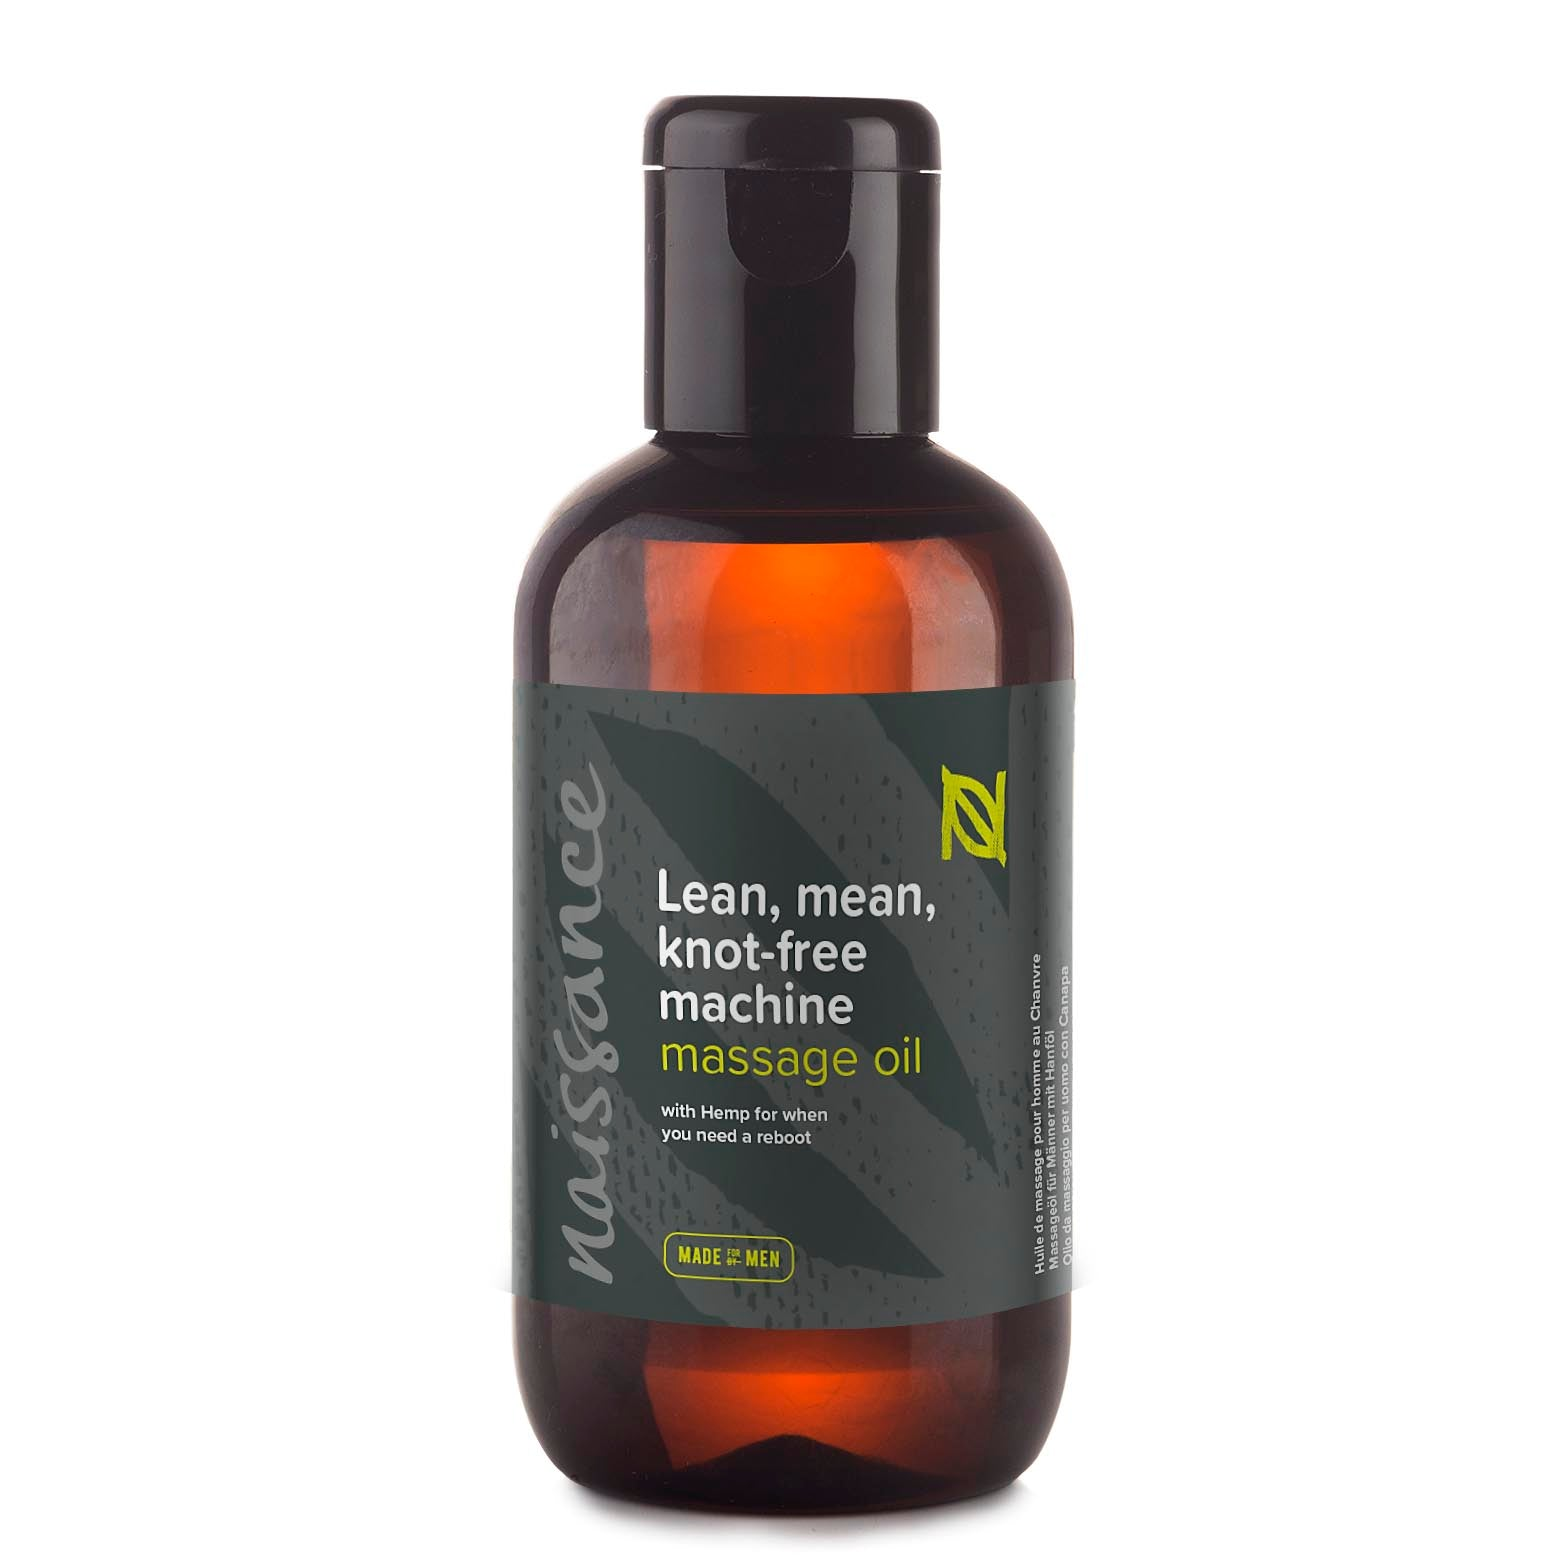 Lean mean knot free machine massage oil